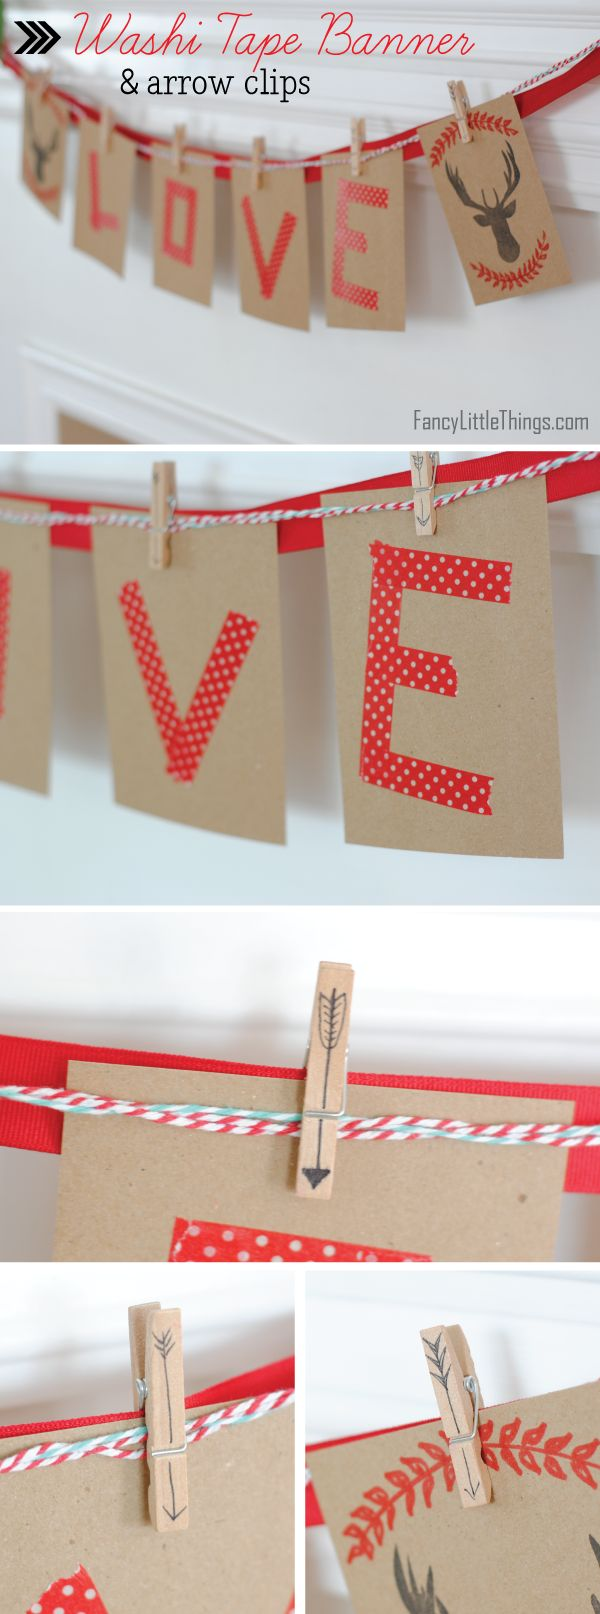 Valentine's Day Banner made from Washi Tape. EASY!